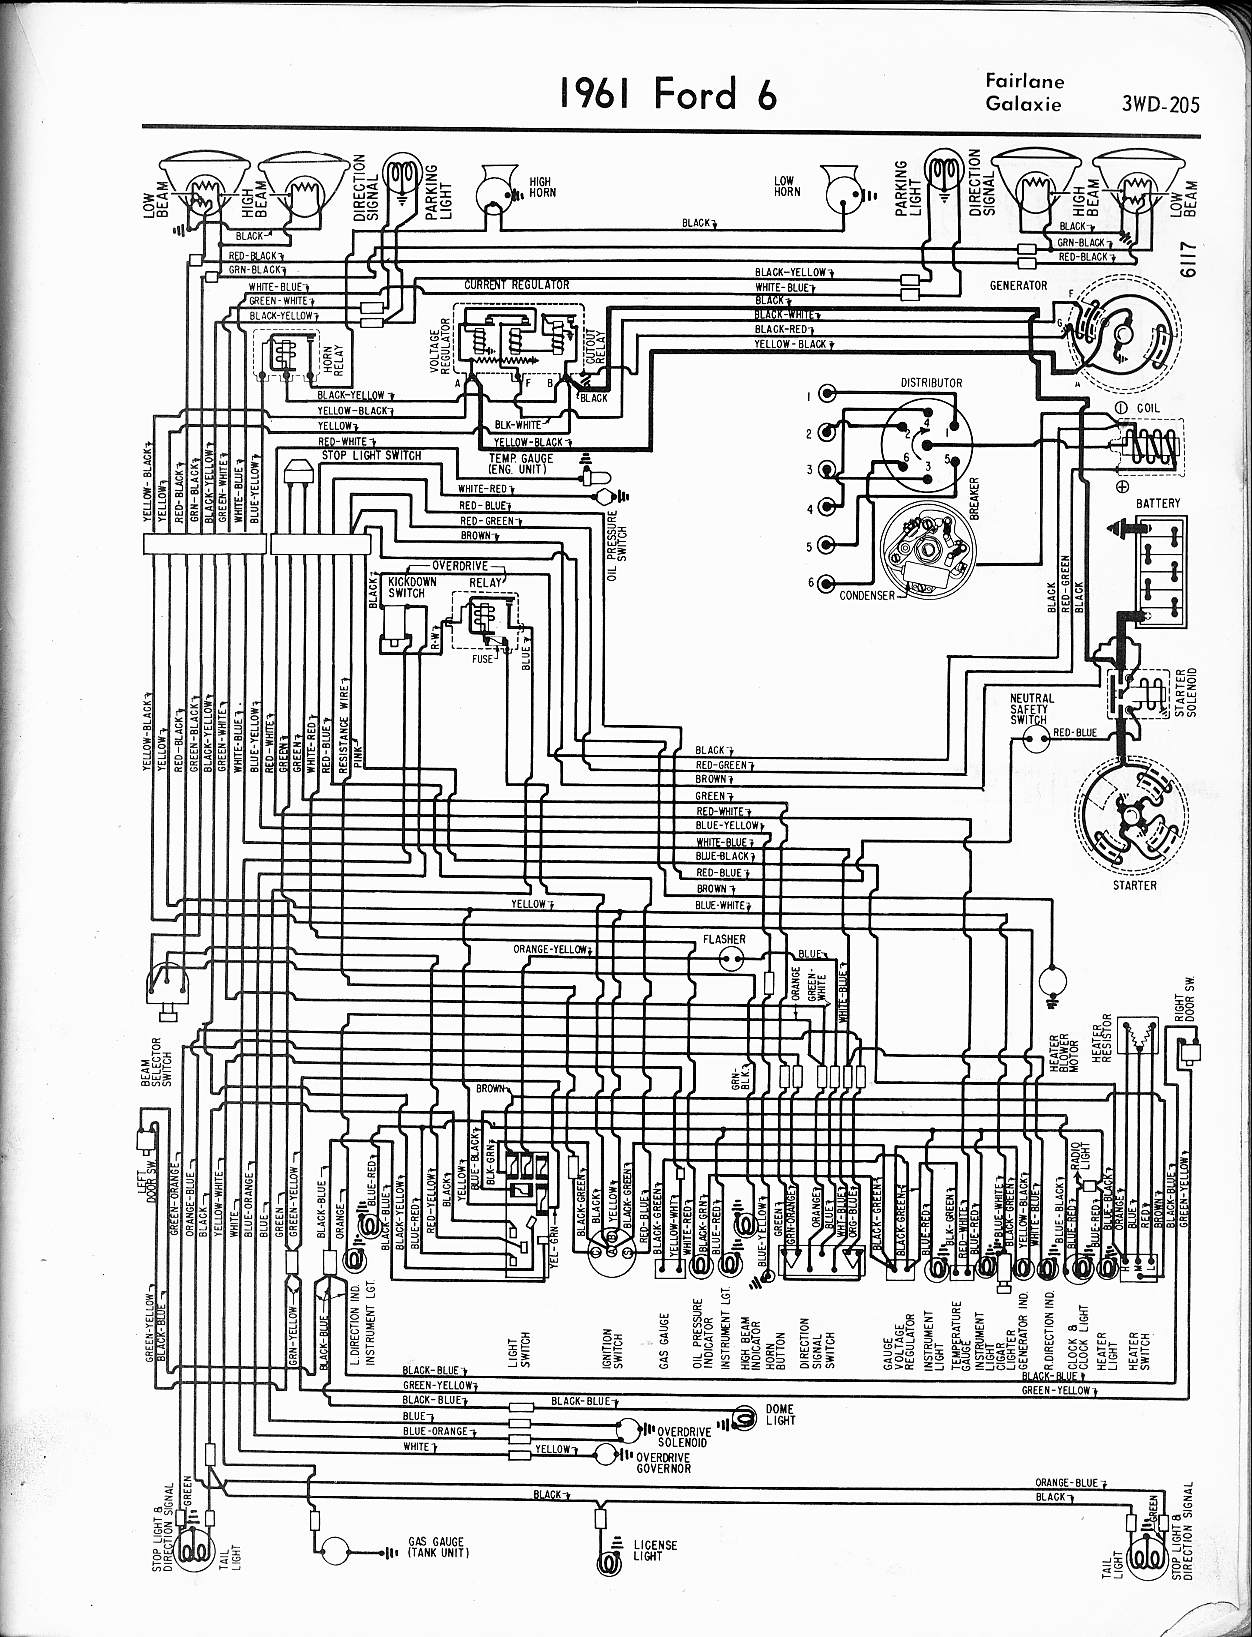 1968 Ford F 250 Starter Wiring Diagram Reveolution Of Convertible 1972 F250 Ignition Simple Rh David Huggett Co Uk F100 Turn Signal